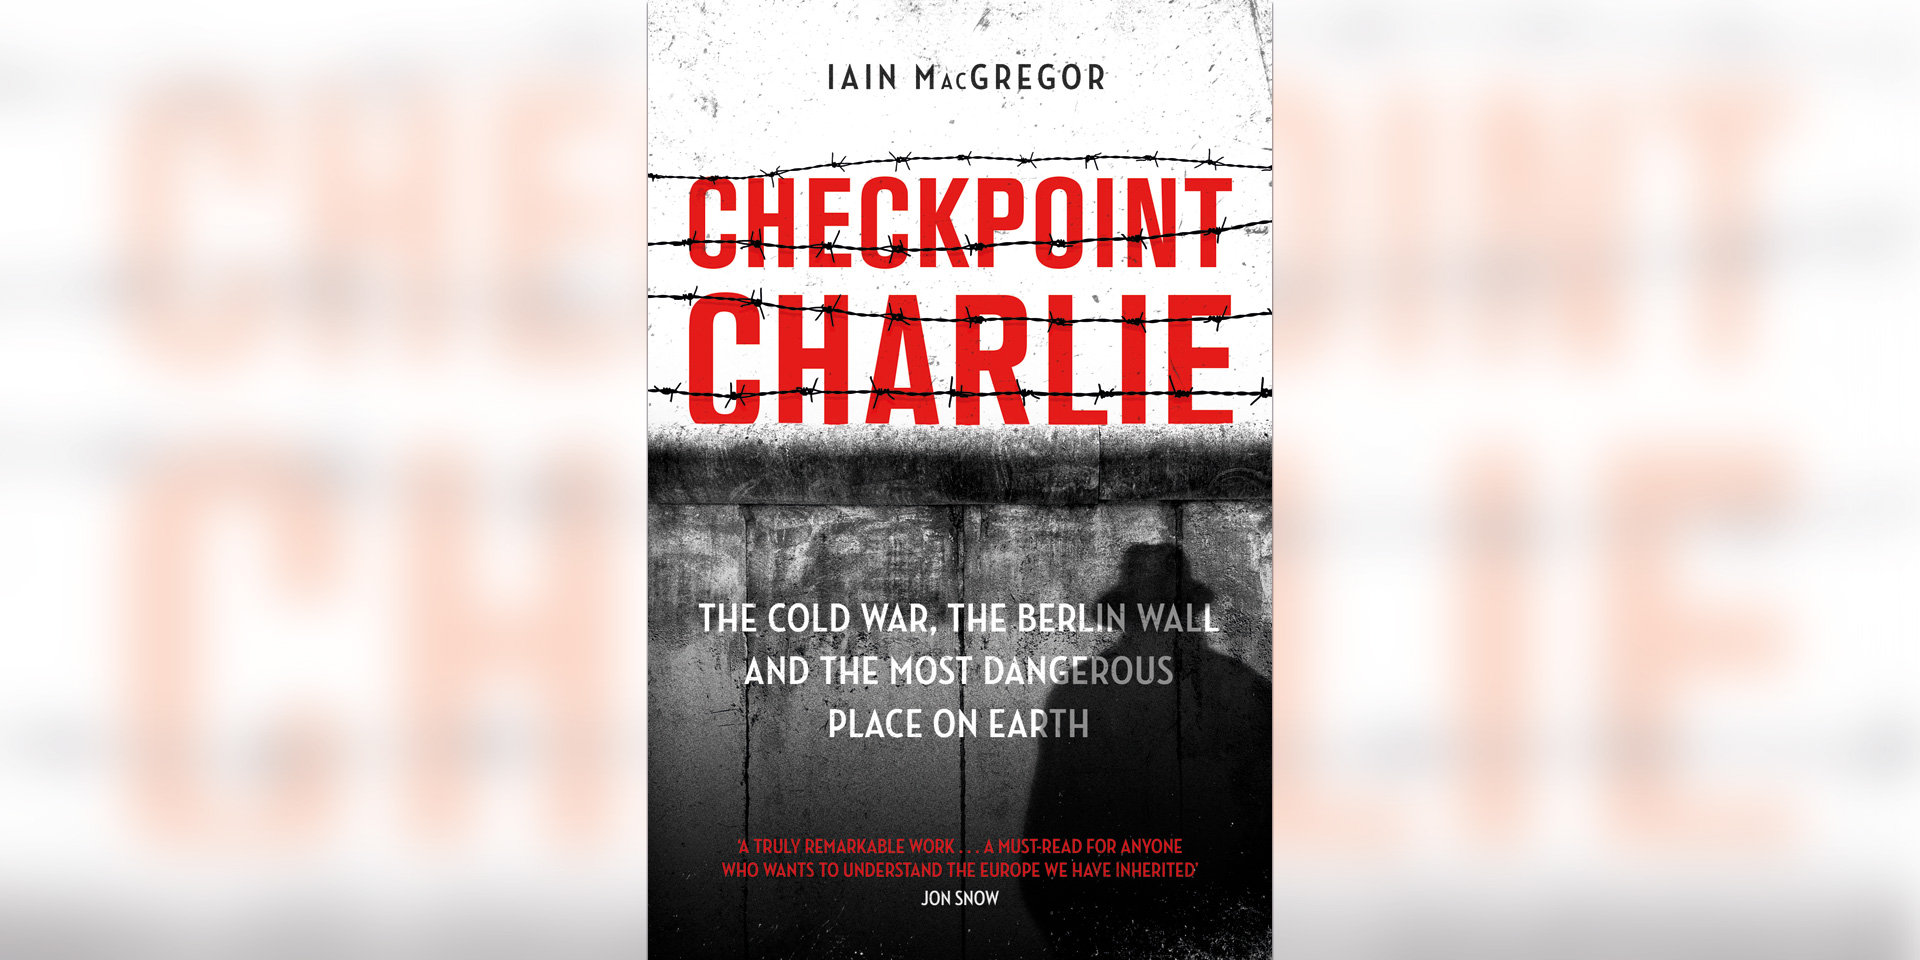 'Checkpoint Charlie' book cover